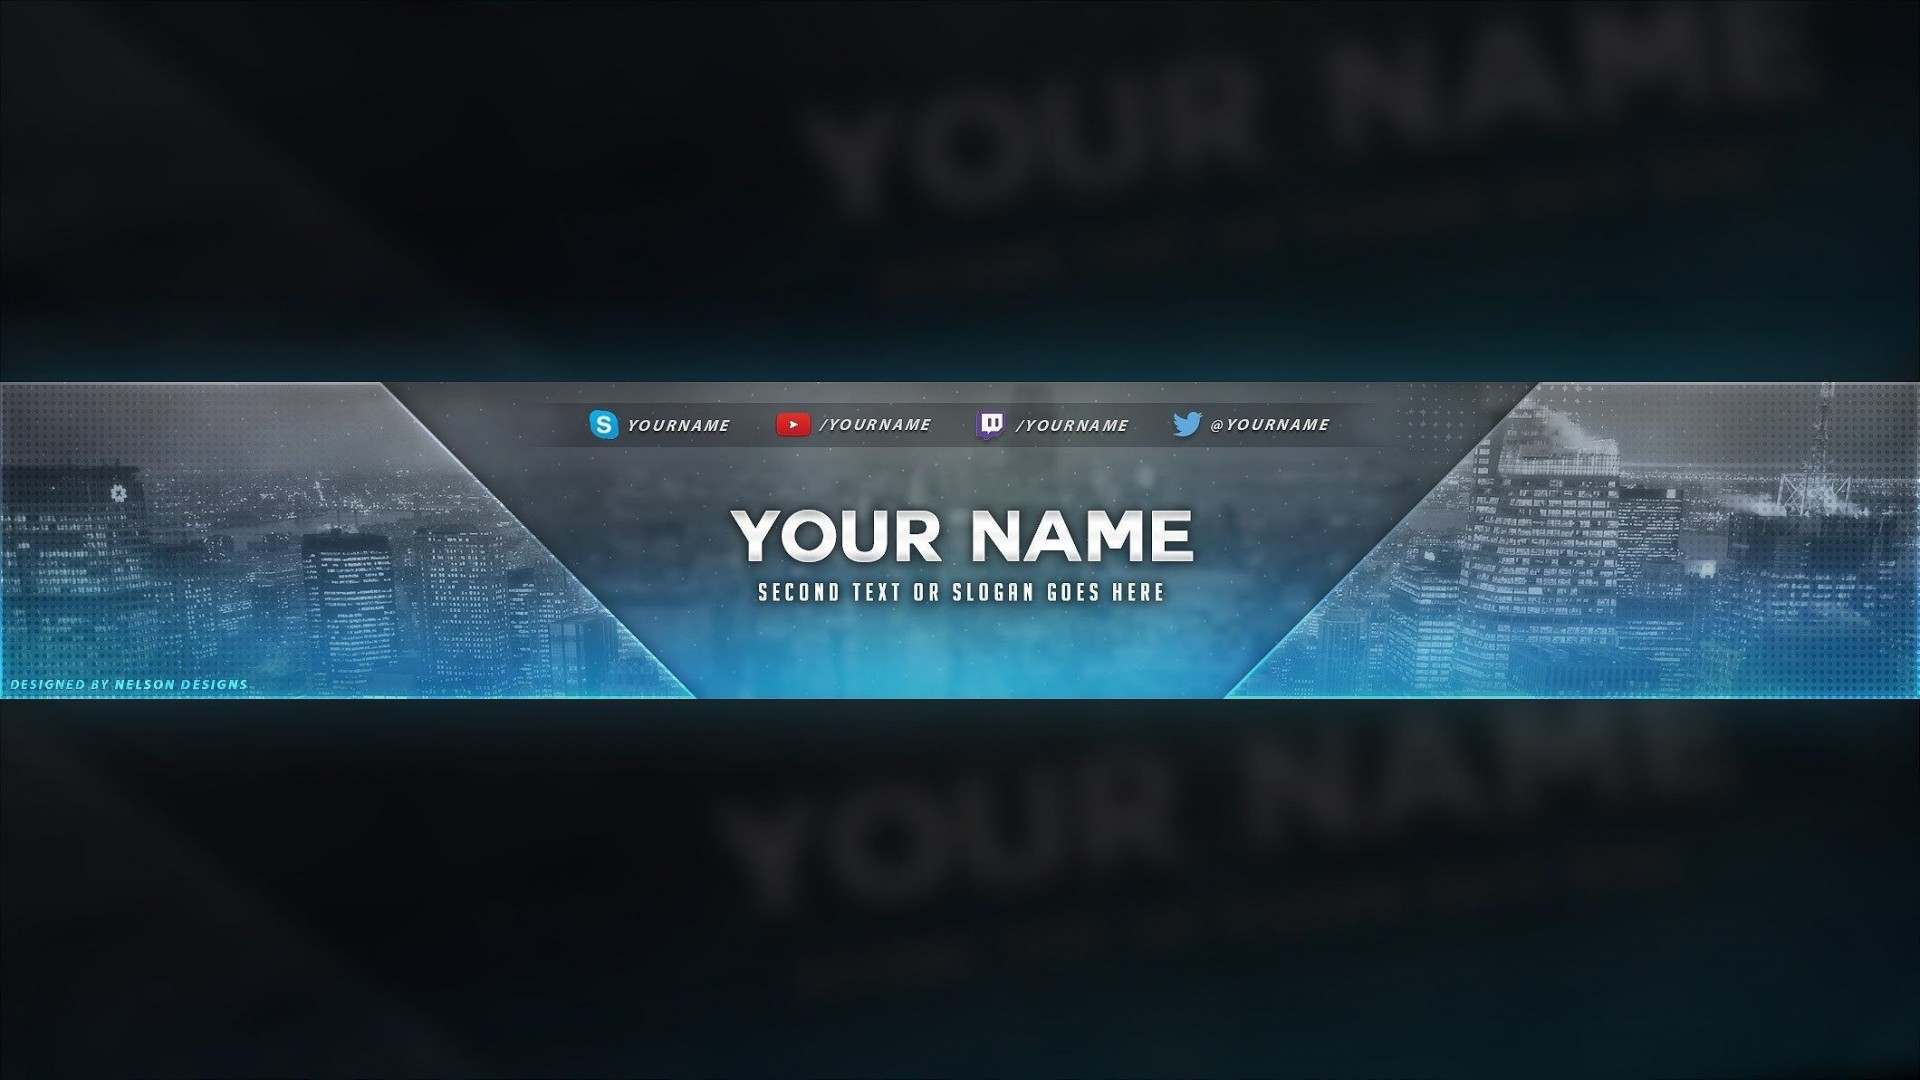 006 Awesome Youtube Channel Art Template Photoshop Download Highest Clarity 1920